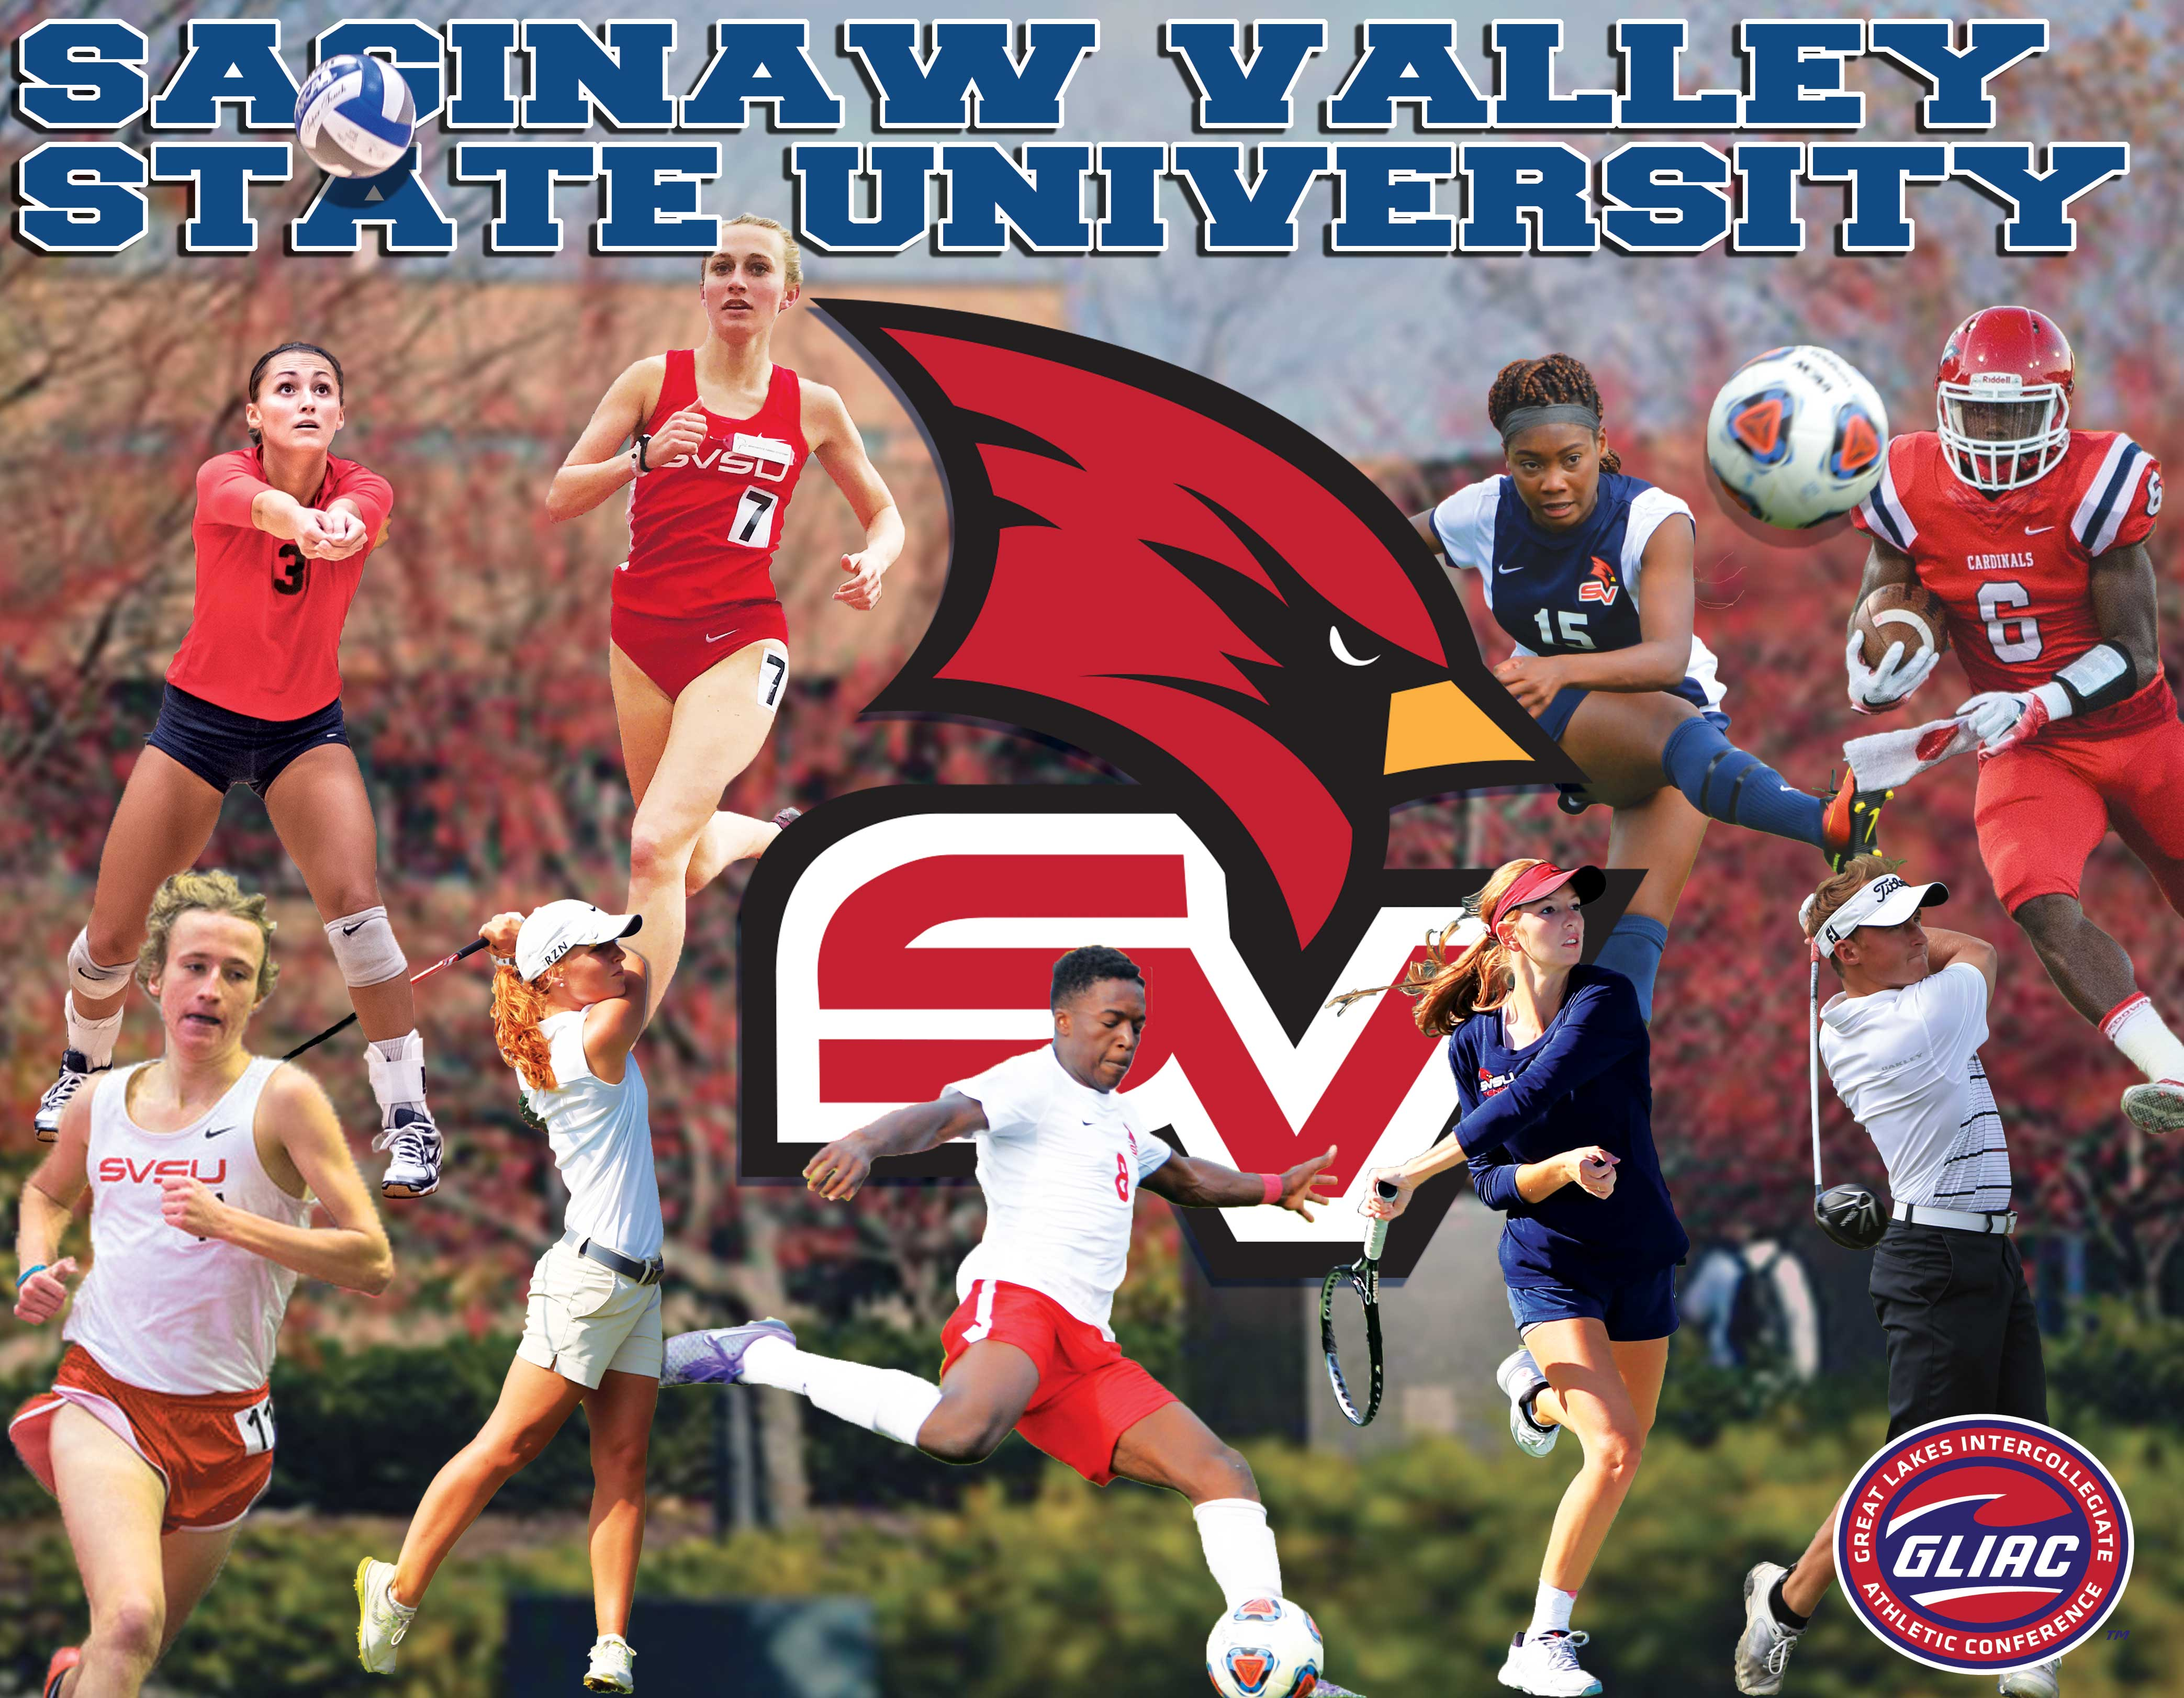 Collage of active sports competing in Fall 2017 including women's tennis, women's volleyball, football, men's and women's golf, men's and women's cross country, men's and women's soccer.